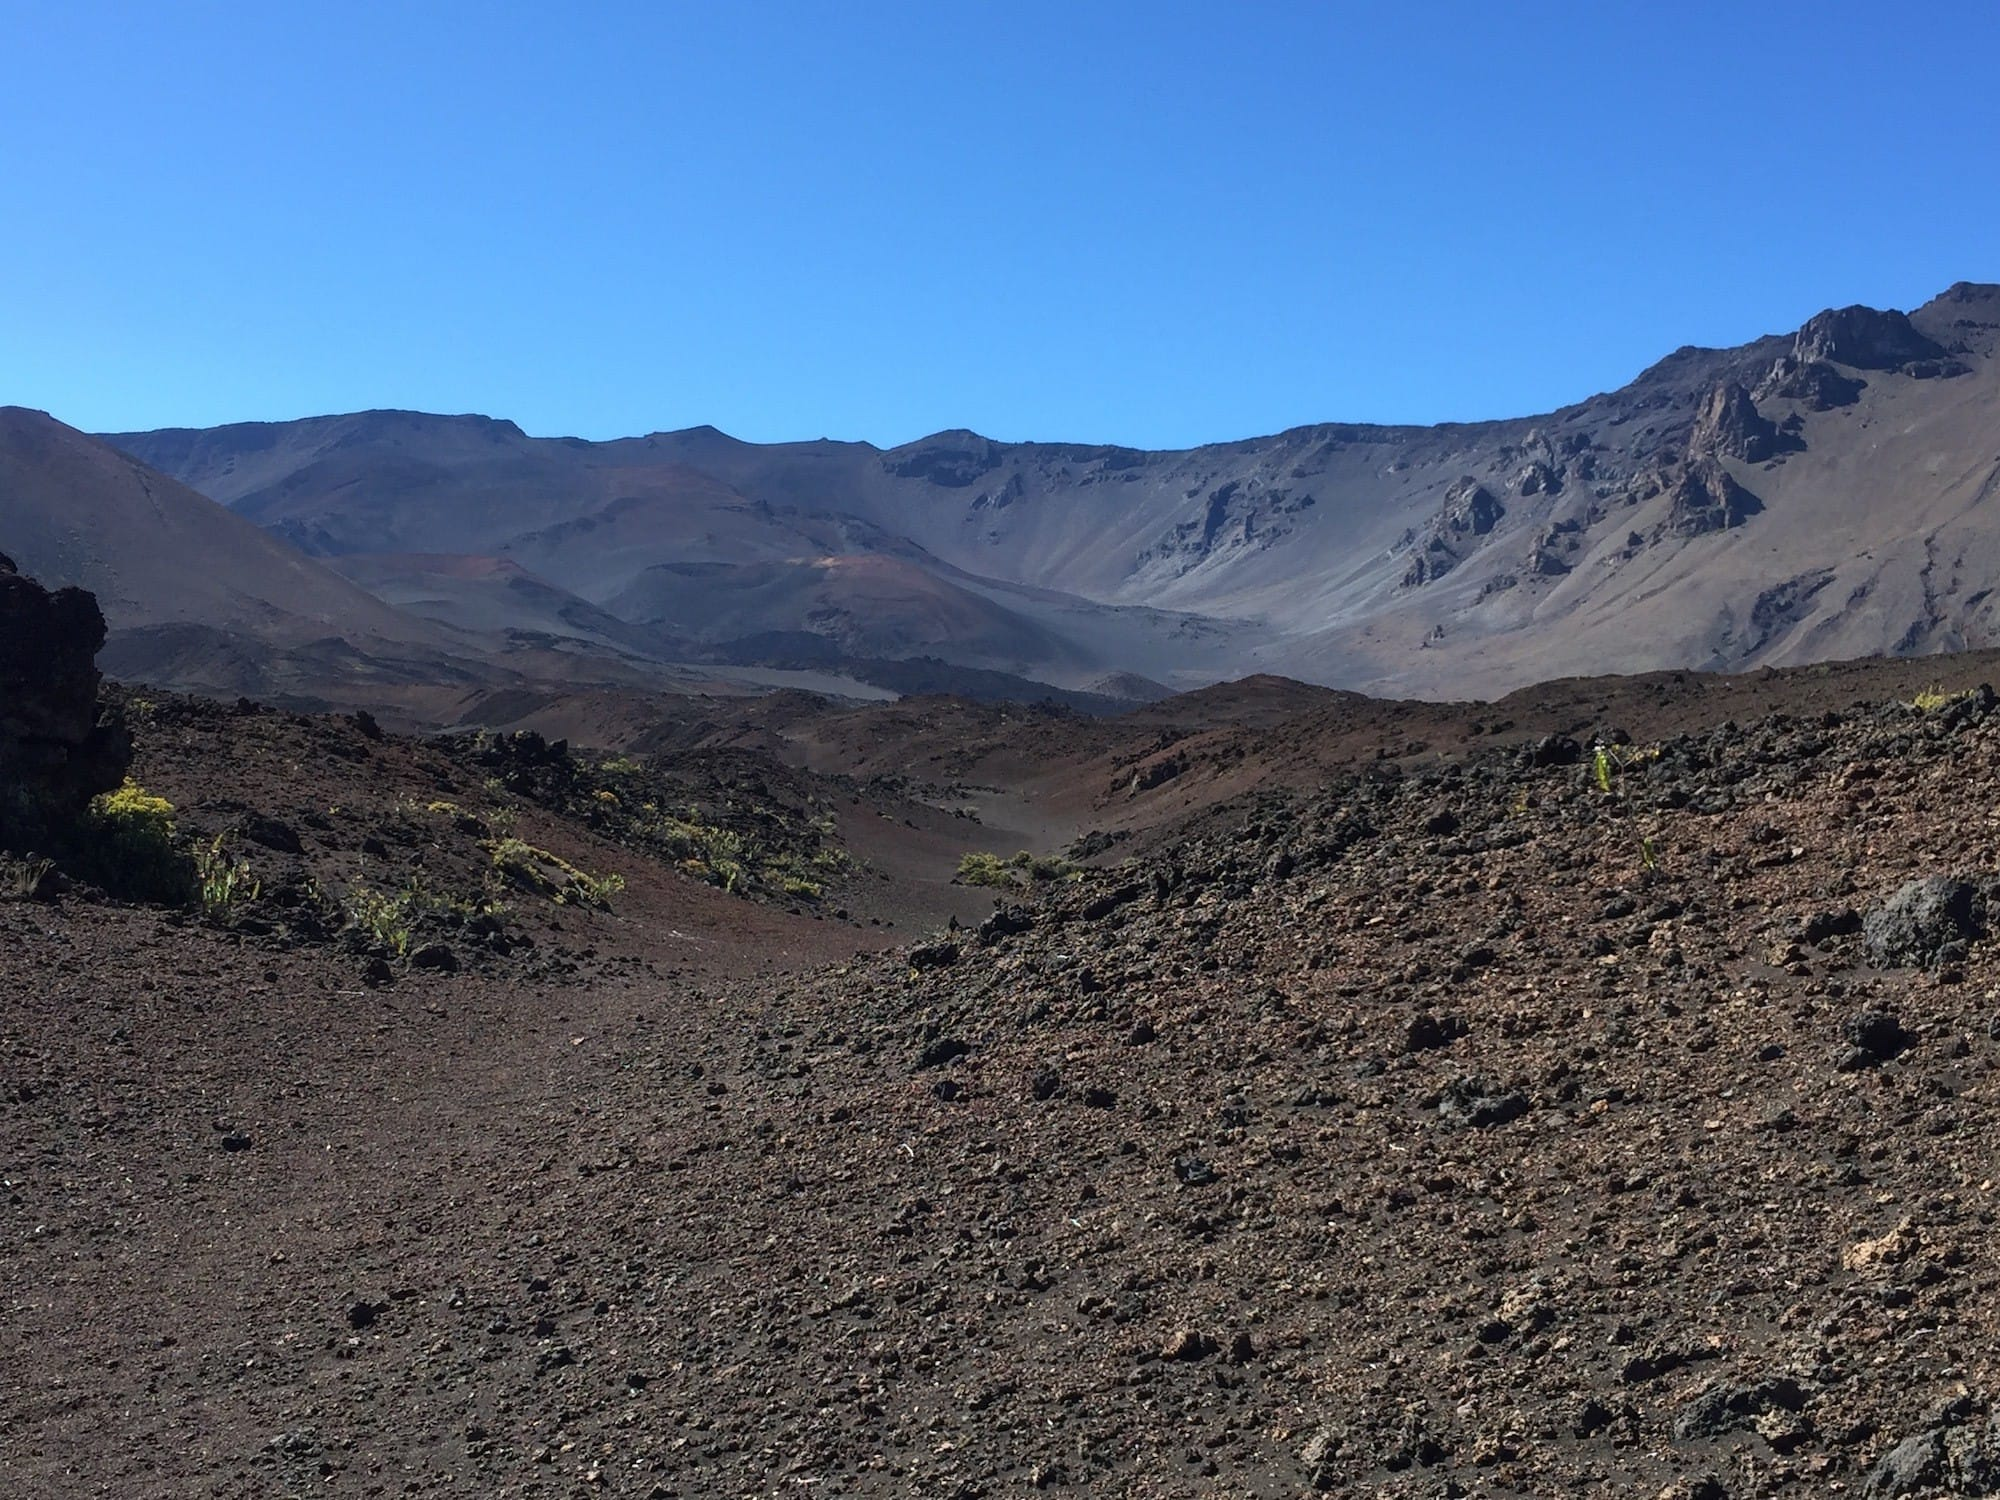 Use our Haleakala National Park guide to plan an adventurous trip to Maui, with helpful info on where to hike, things to do, where to camp/stay on Maui, and the best sites in the National Park.